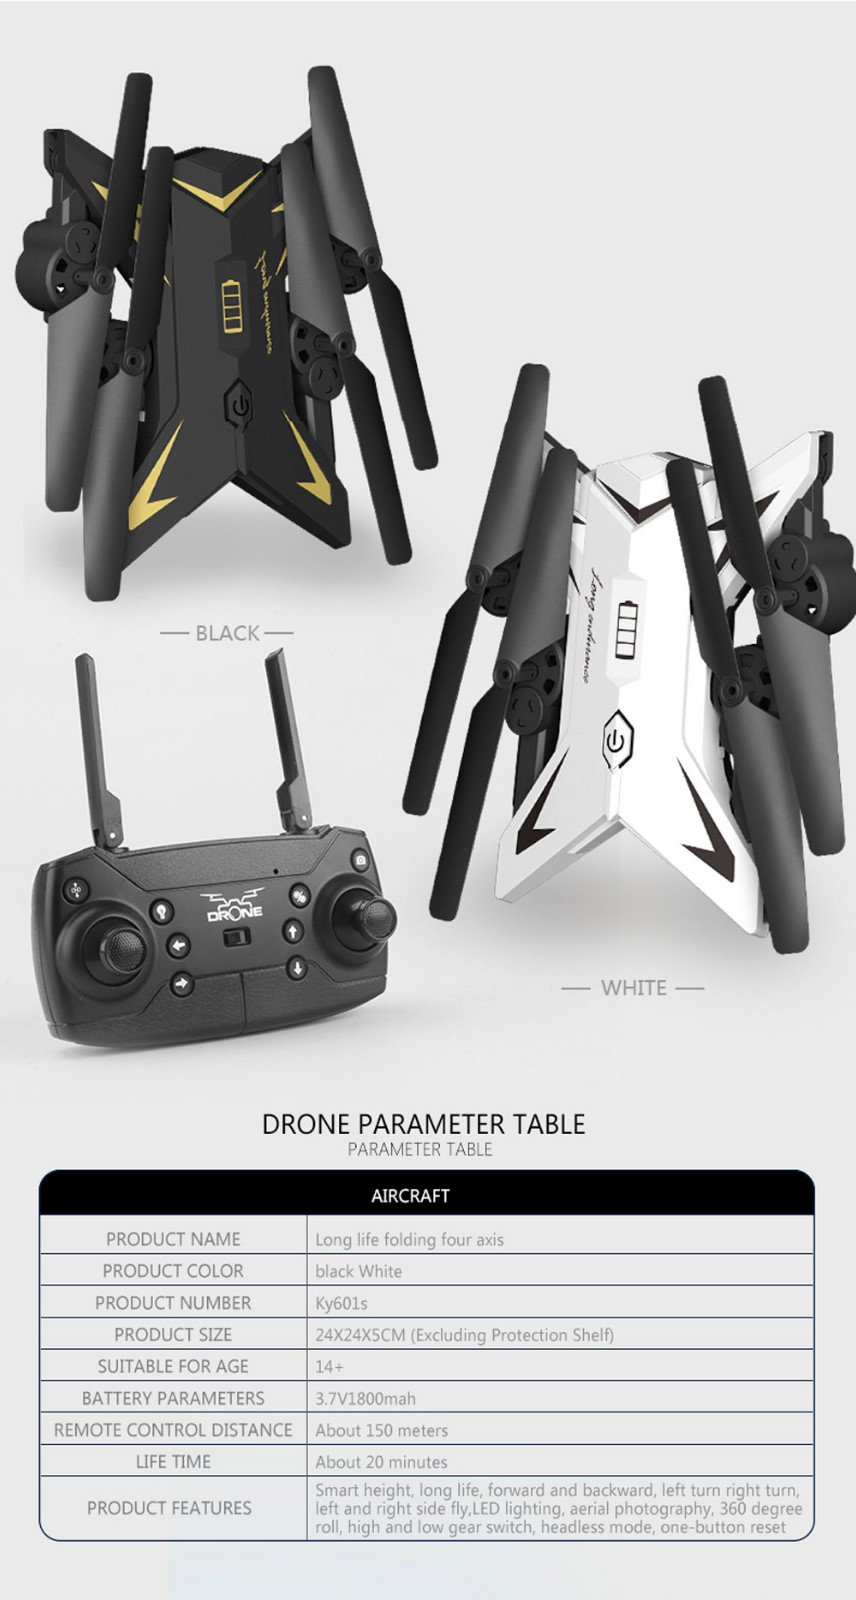 601S 1080P 5MP Quadcopter With Camera Foldable WIFI FPV Drone 20Min Flying 6-axis 4CH RC Helicopter Selfie Drones With Camera HD 33